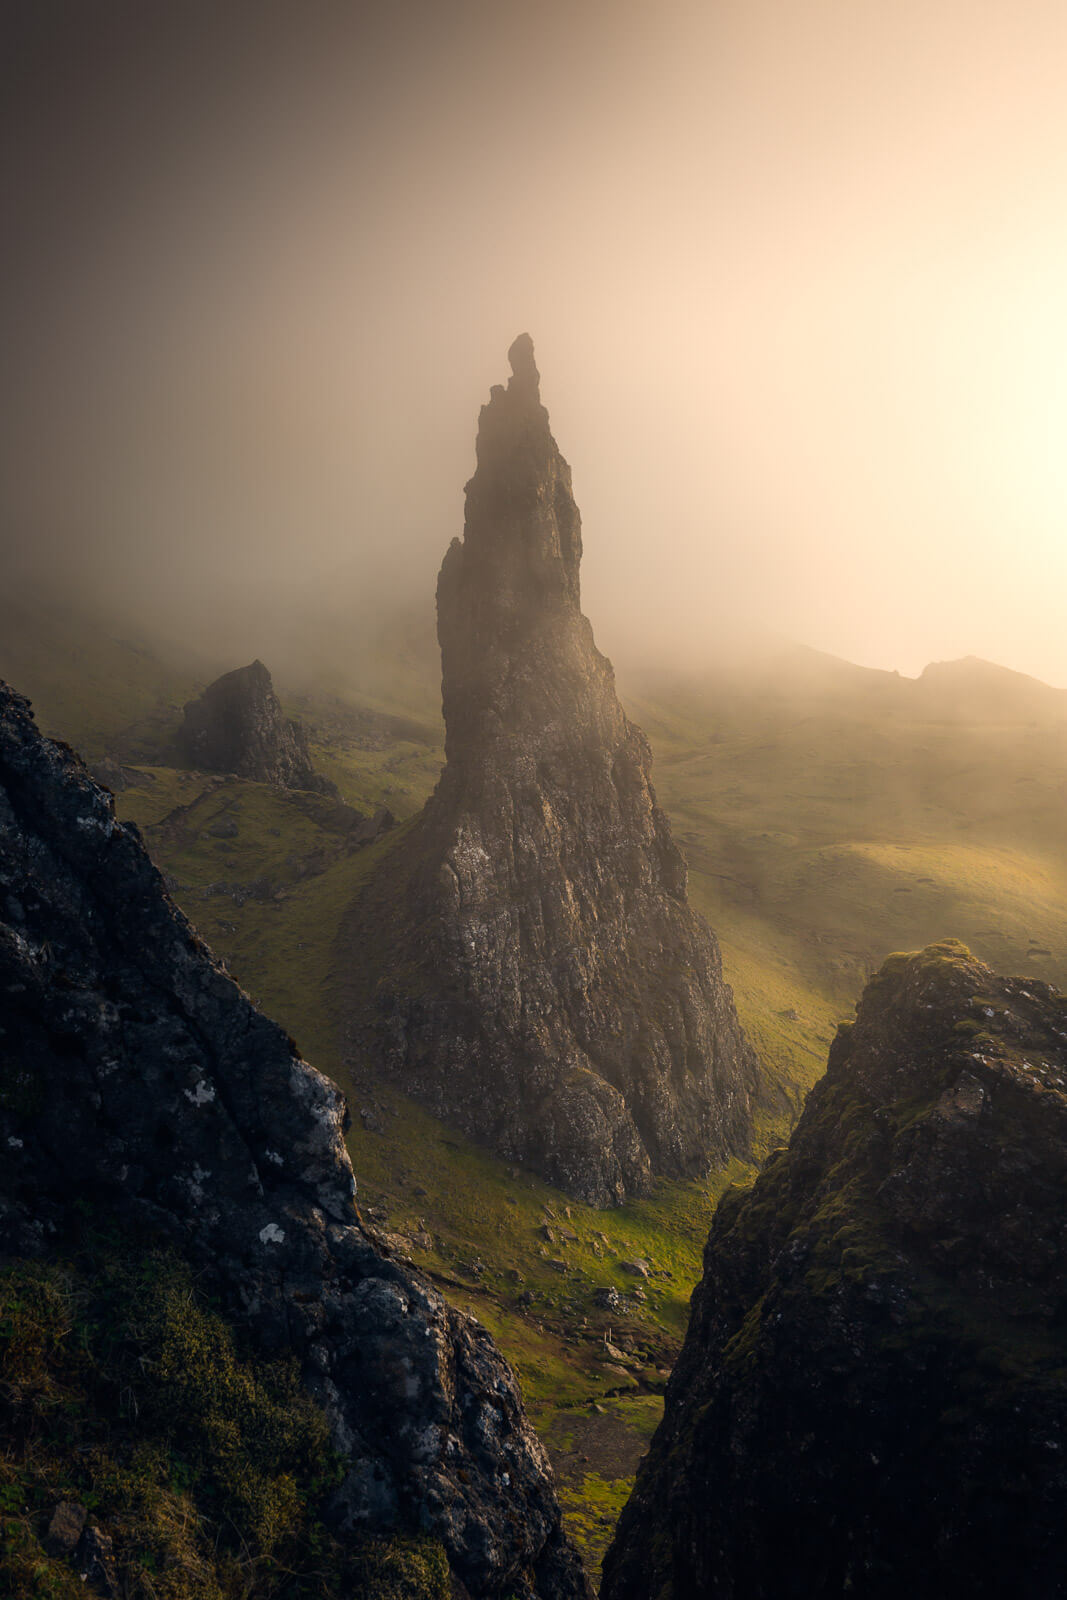 A foggy day at the Old Man of Storr in Scotland